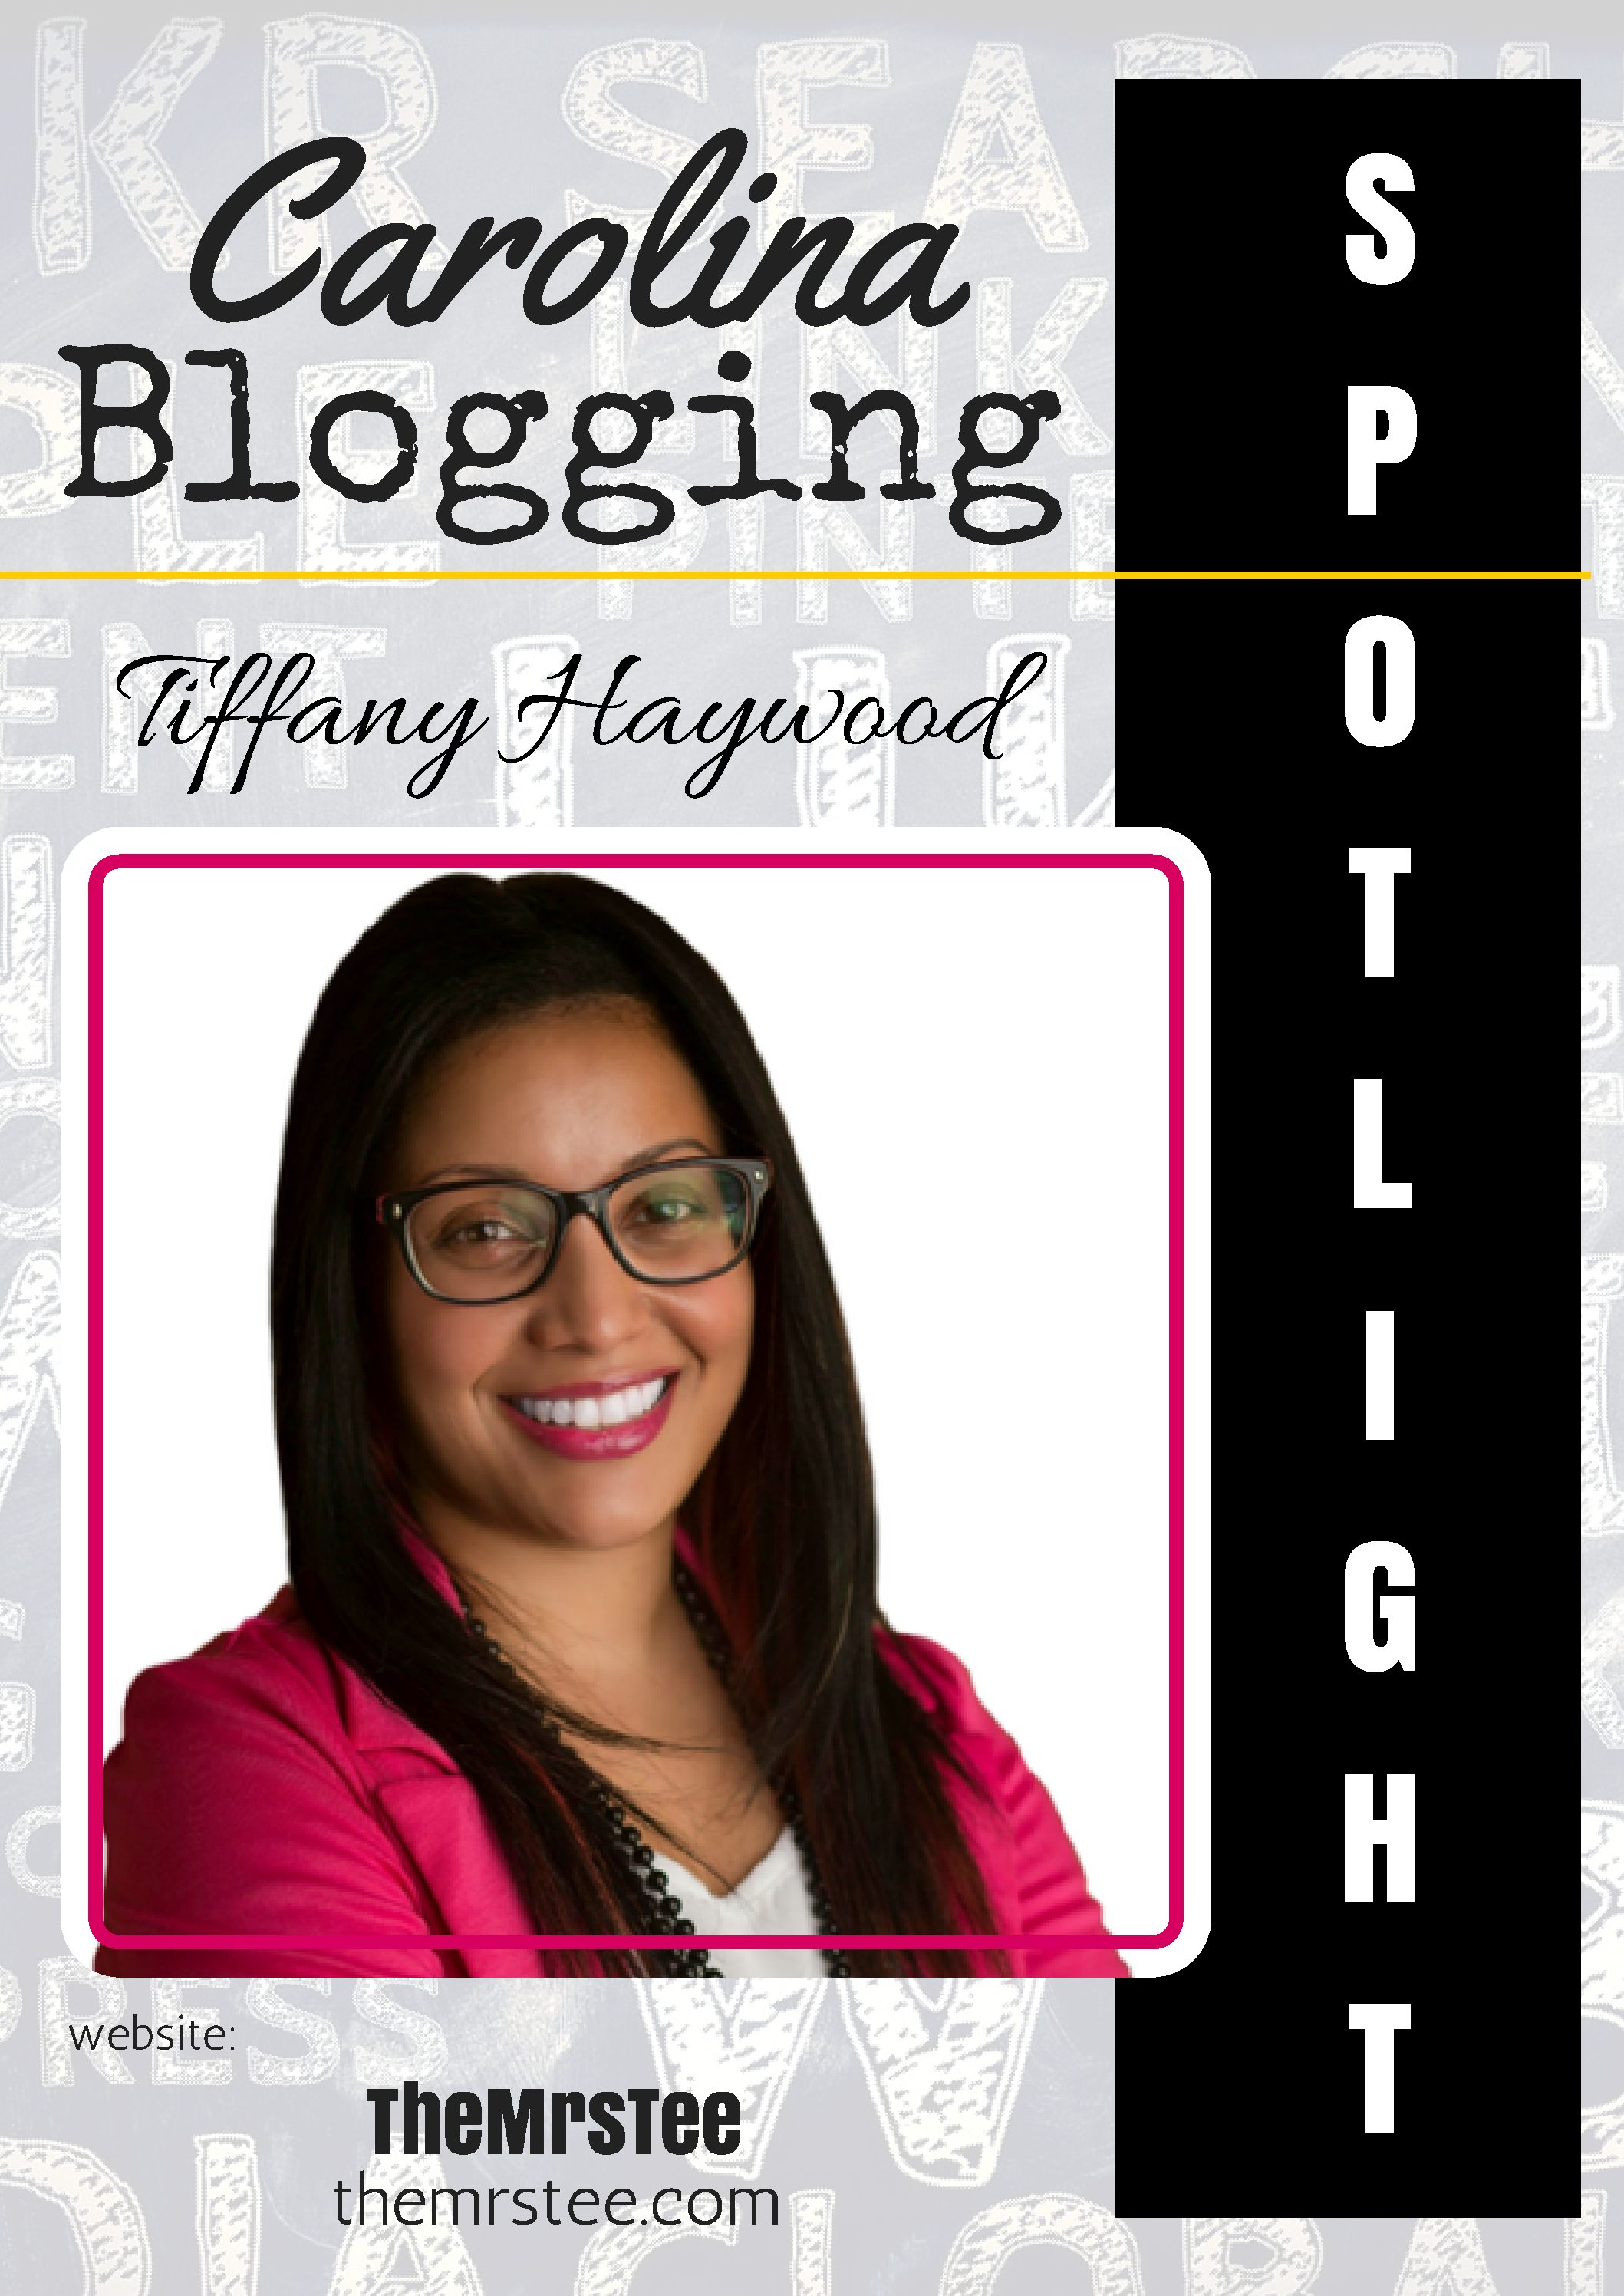 5 QUESTIONS WITH… Tiffany Haywood